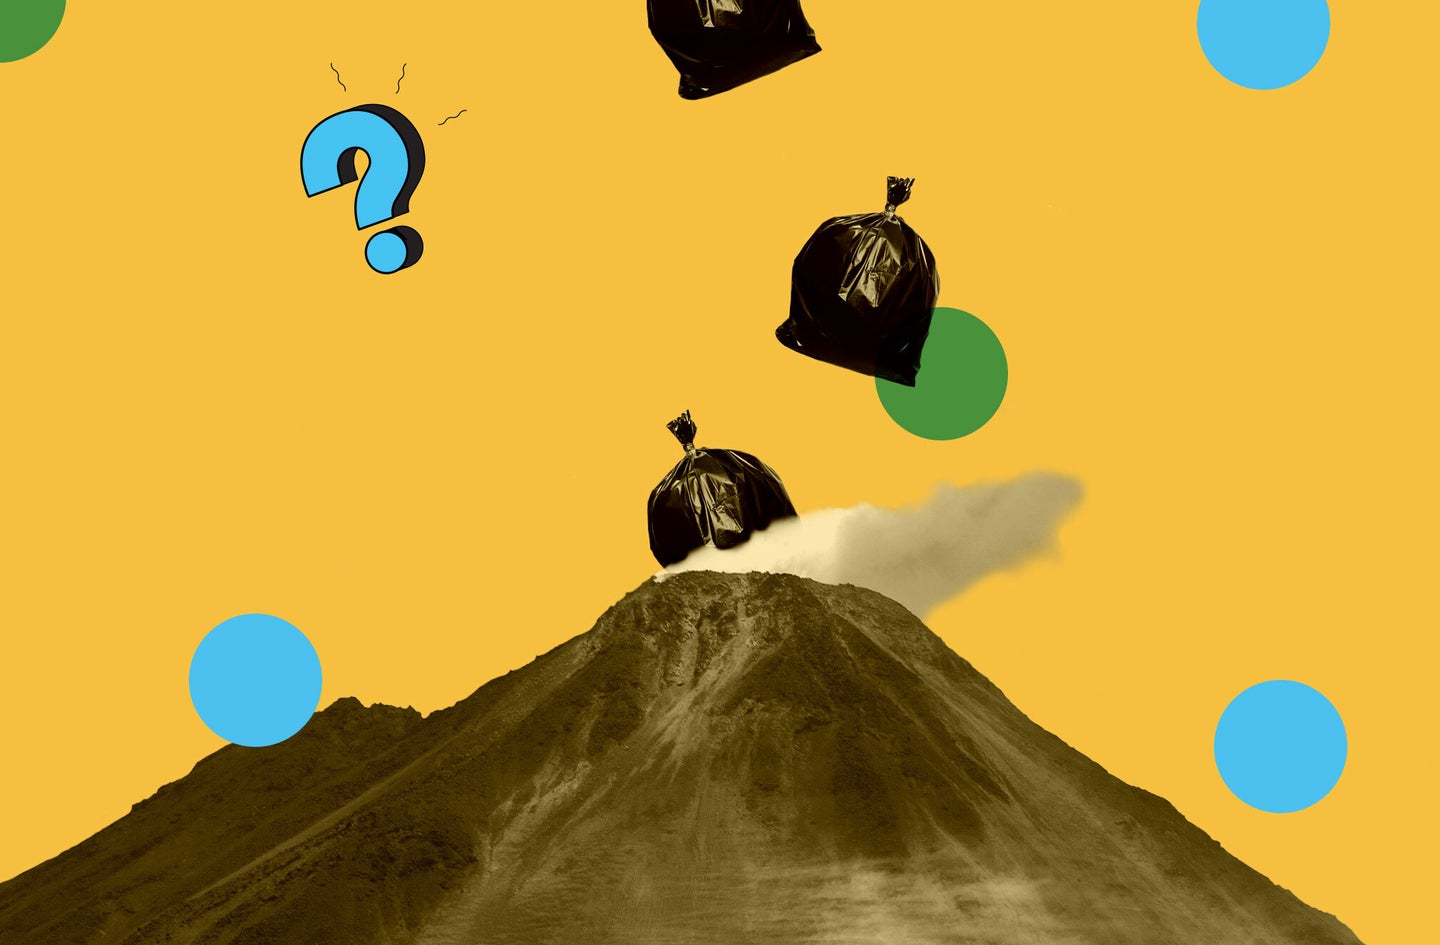 trash falling into a volcano under the ask us anything logo